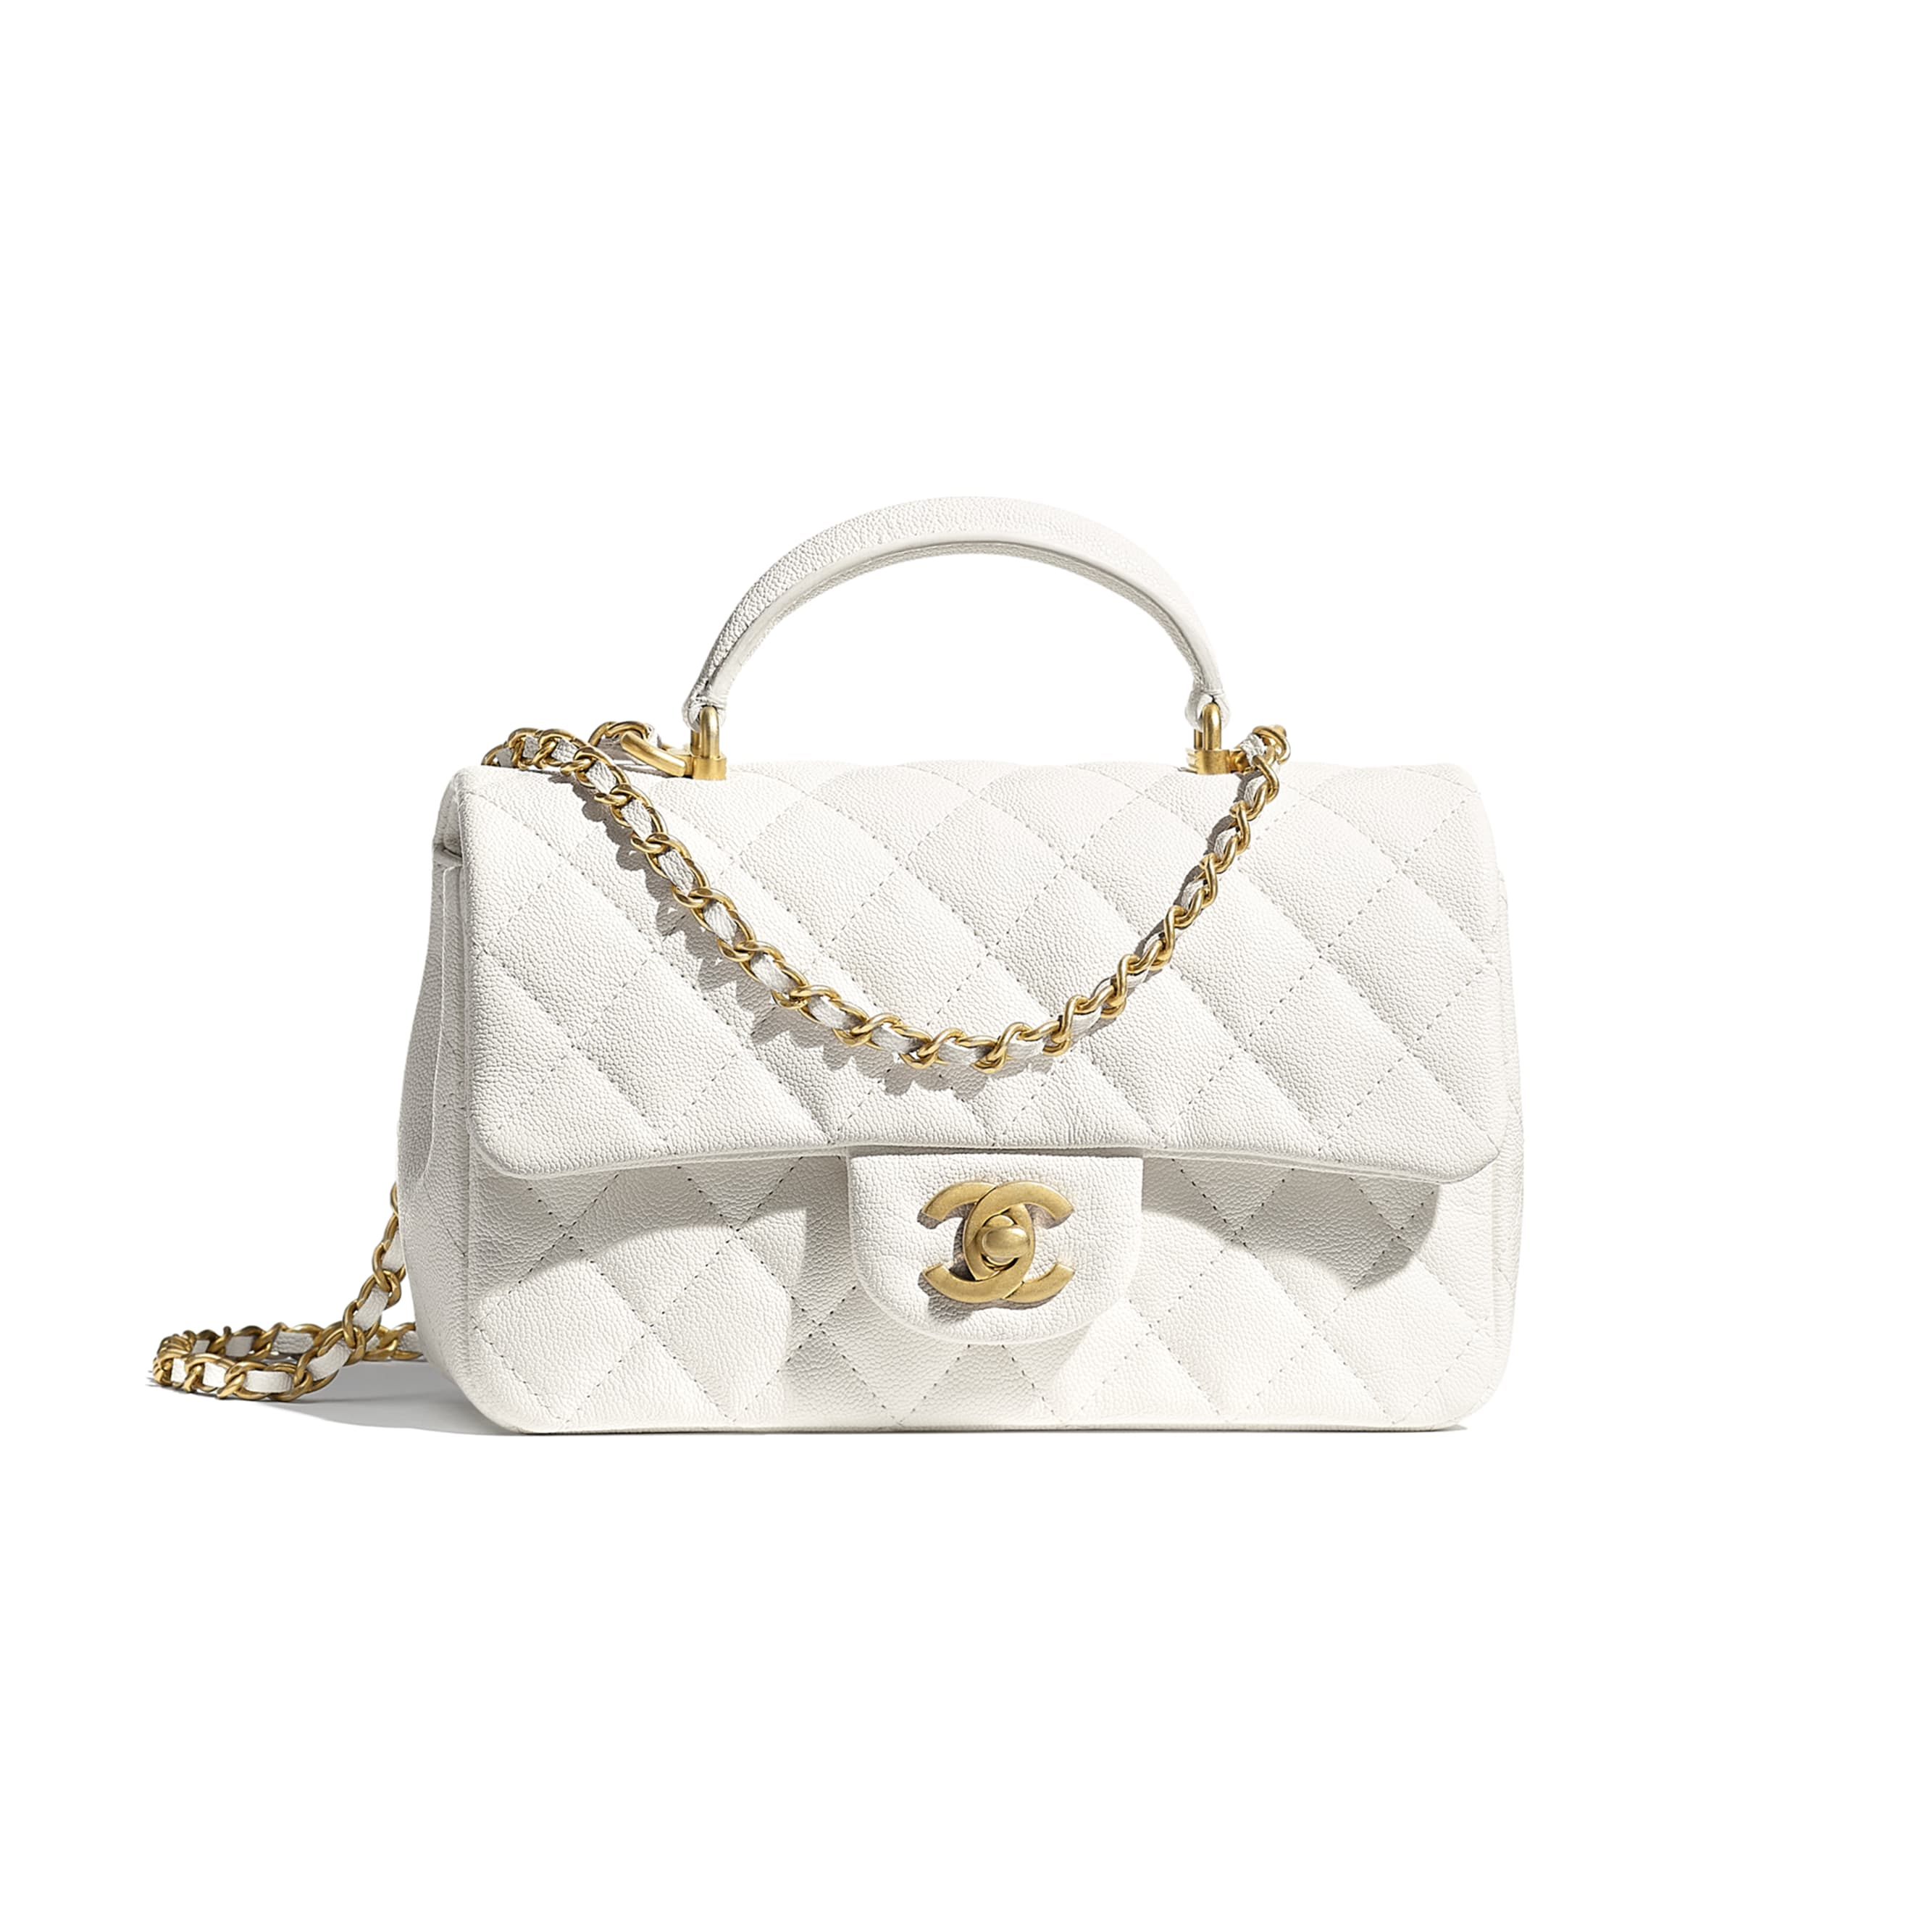 Mini Flap Bag with Top Handle - White - Grained Calfskin & Gold-Tone Metal - CHANEL - Default view - see standard sized version